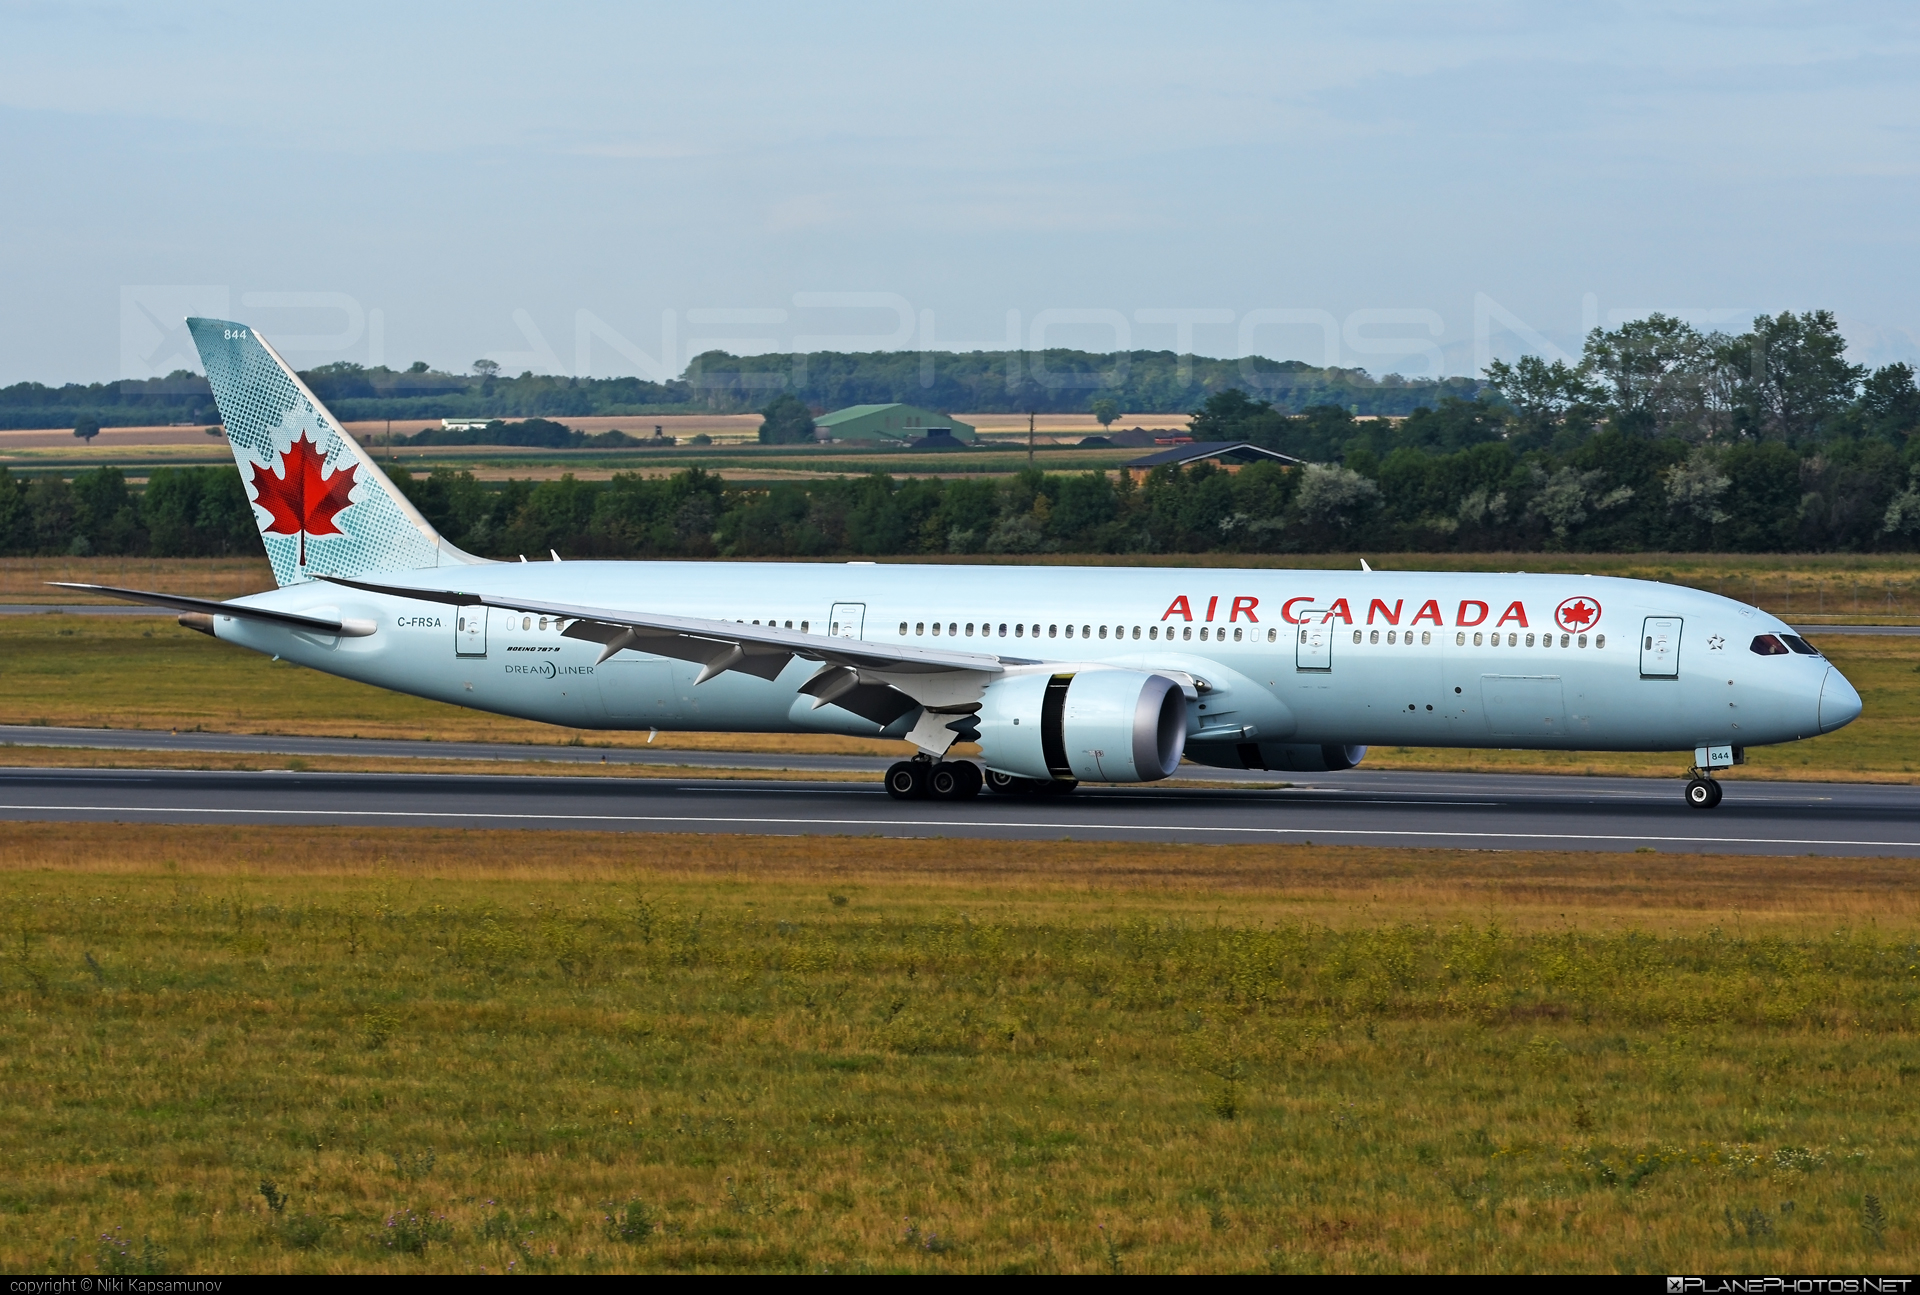 Boeing 787-9 Dreamliner - C-FRSA operated by Air Canada #aircanada #b787 #boeing #boeing787 #dreamliner